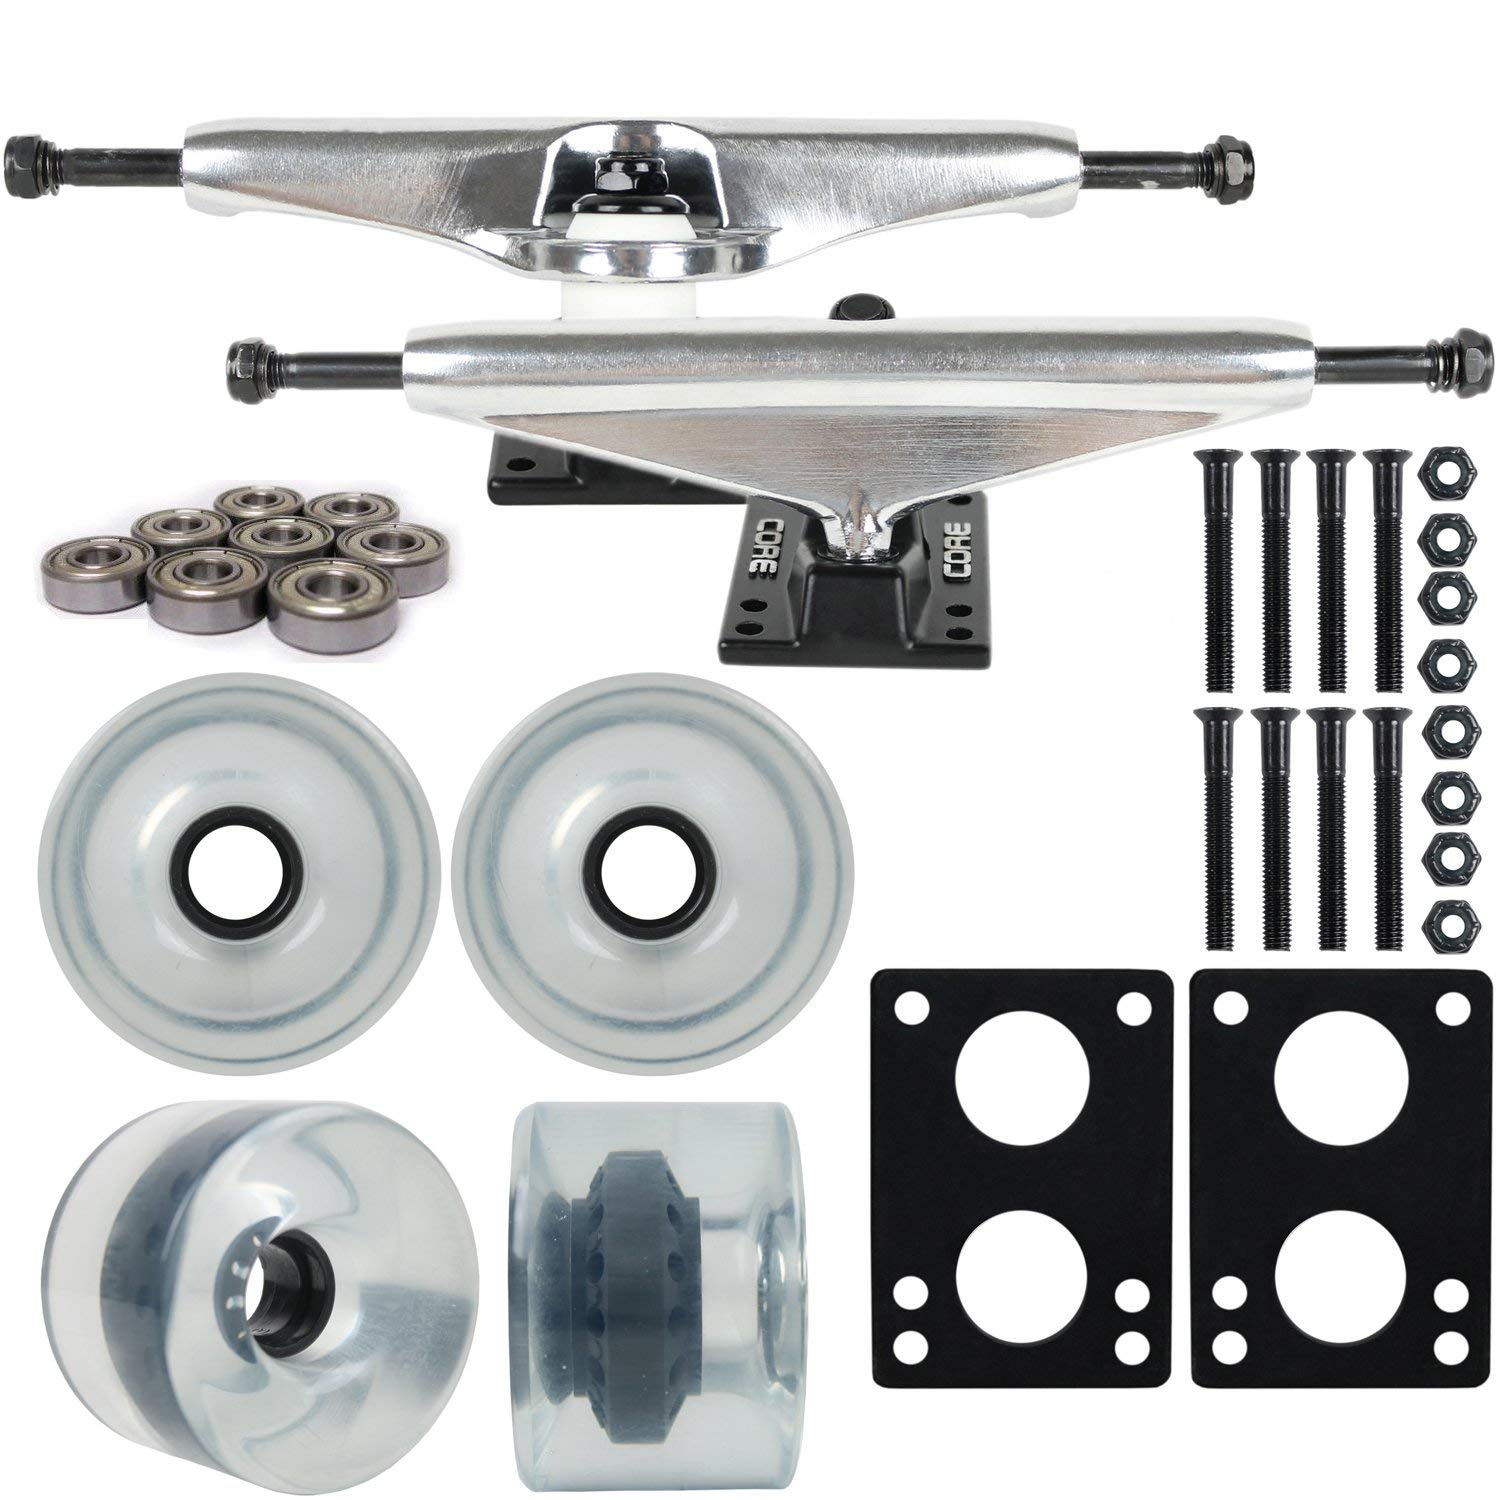 "Longboard Skateboard Trucks Combo Set 76mm Blank Wheels with Silver Trucks, Bearings, and Hardware Package (76mm Clear Wheels, 7.0 (9.63"") Silver Trucks)"